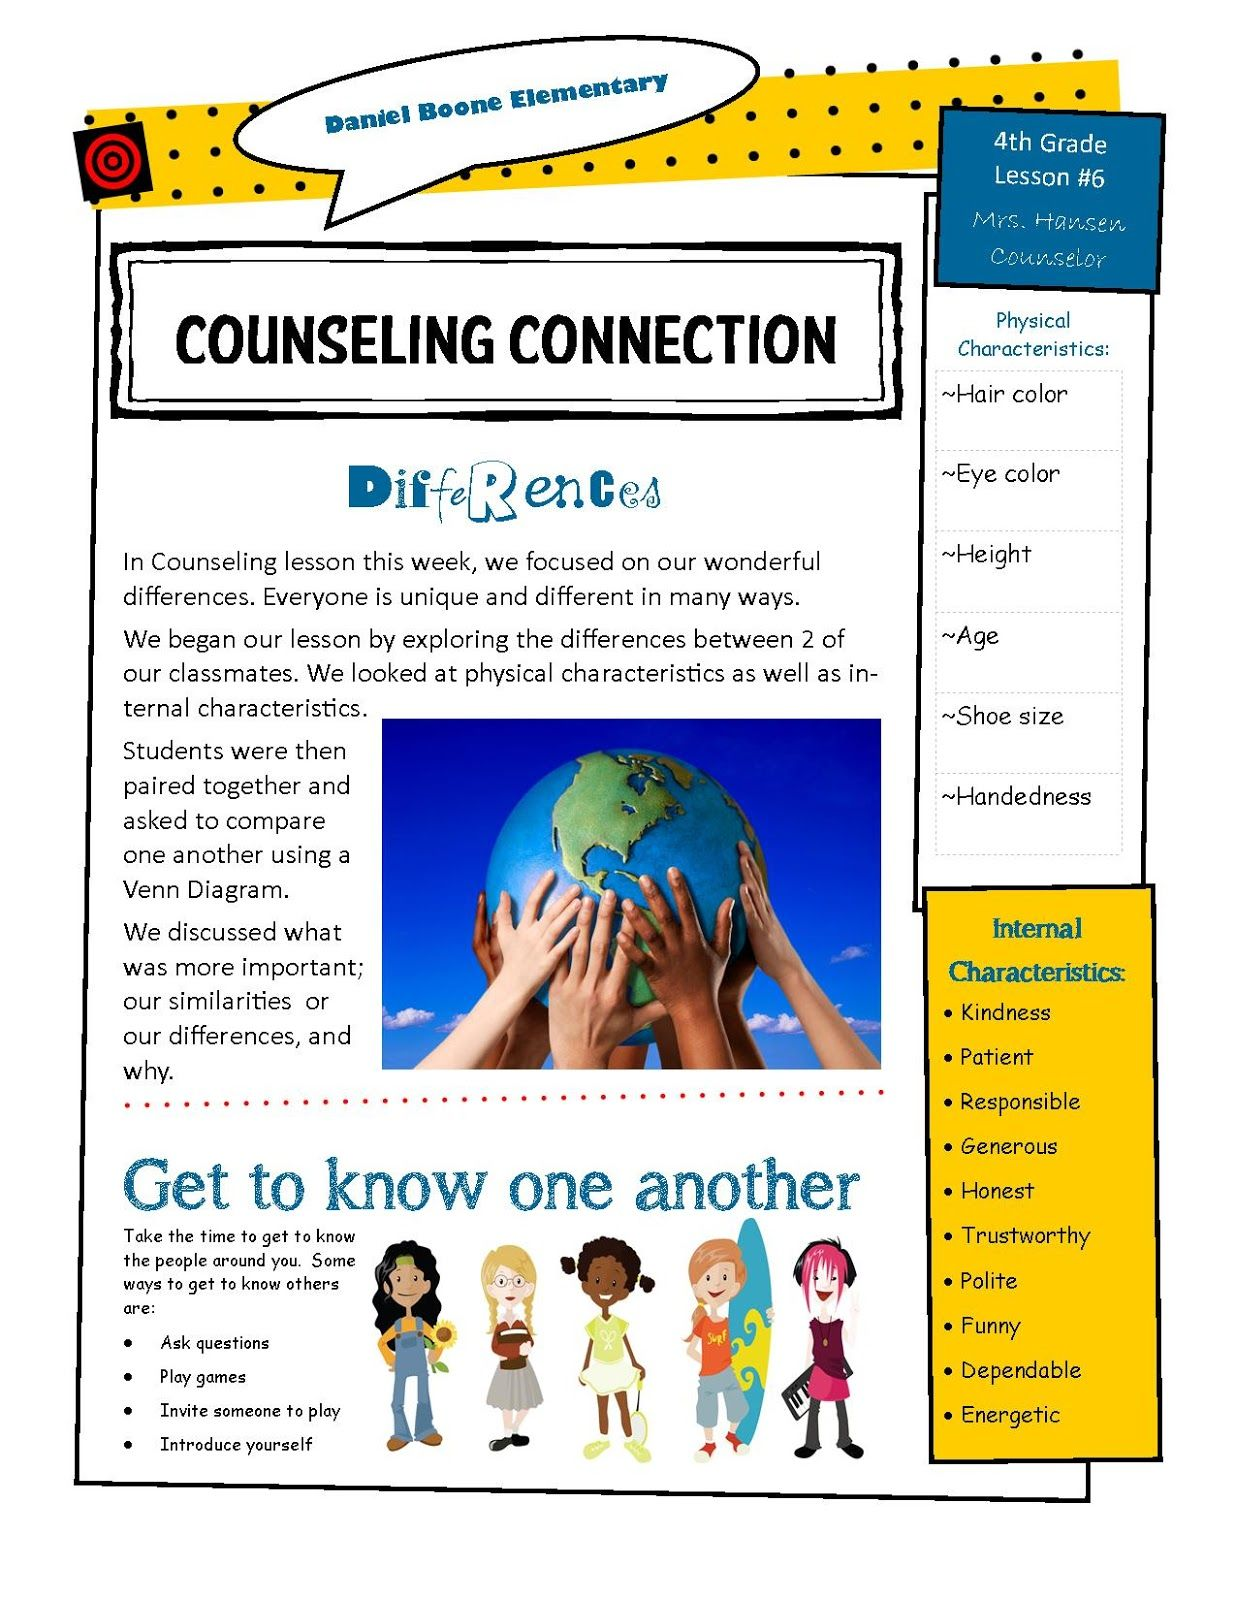 hanselor the counselor 4th grade lesson elementary counseling